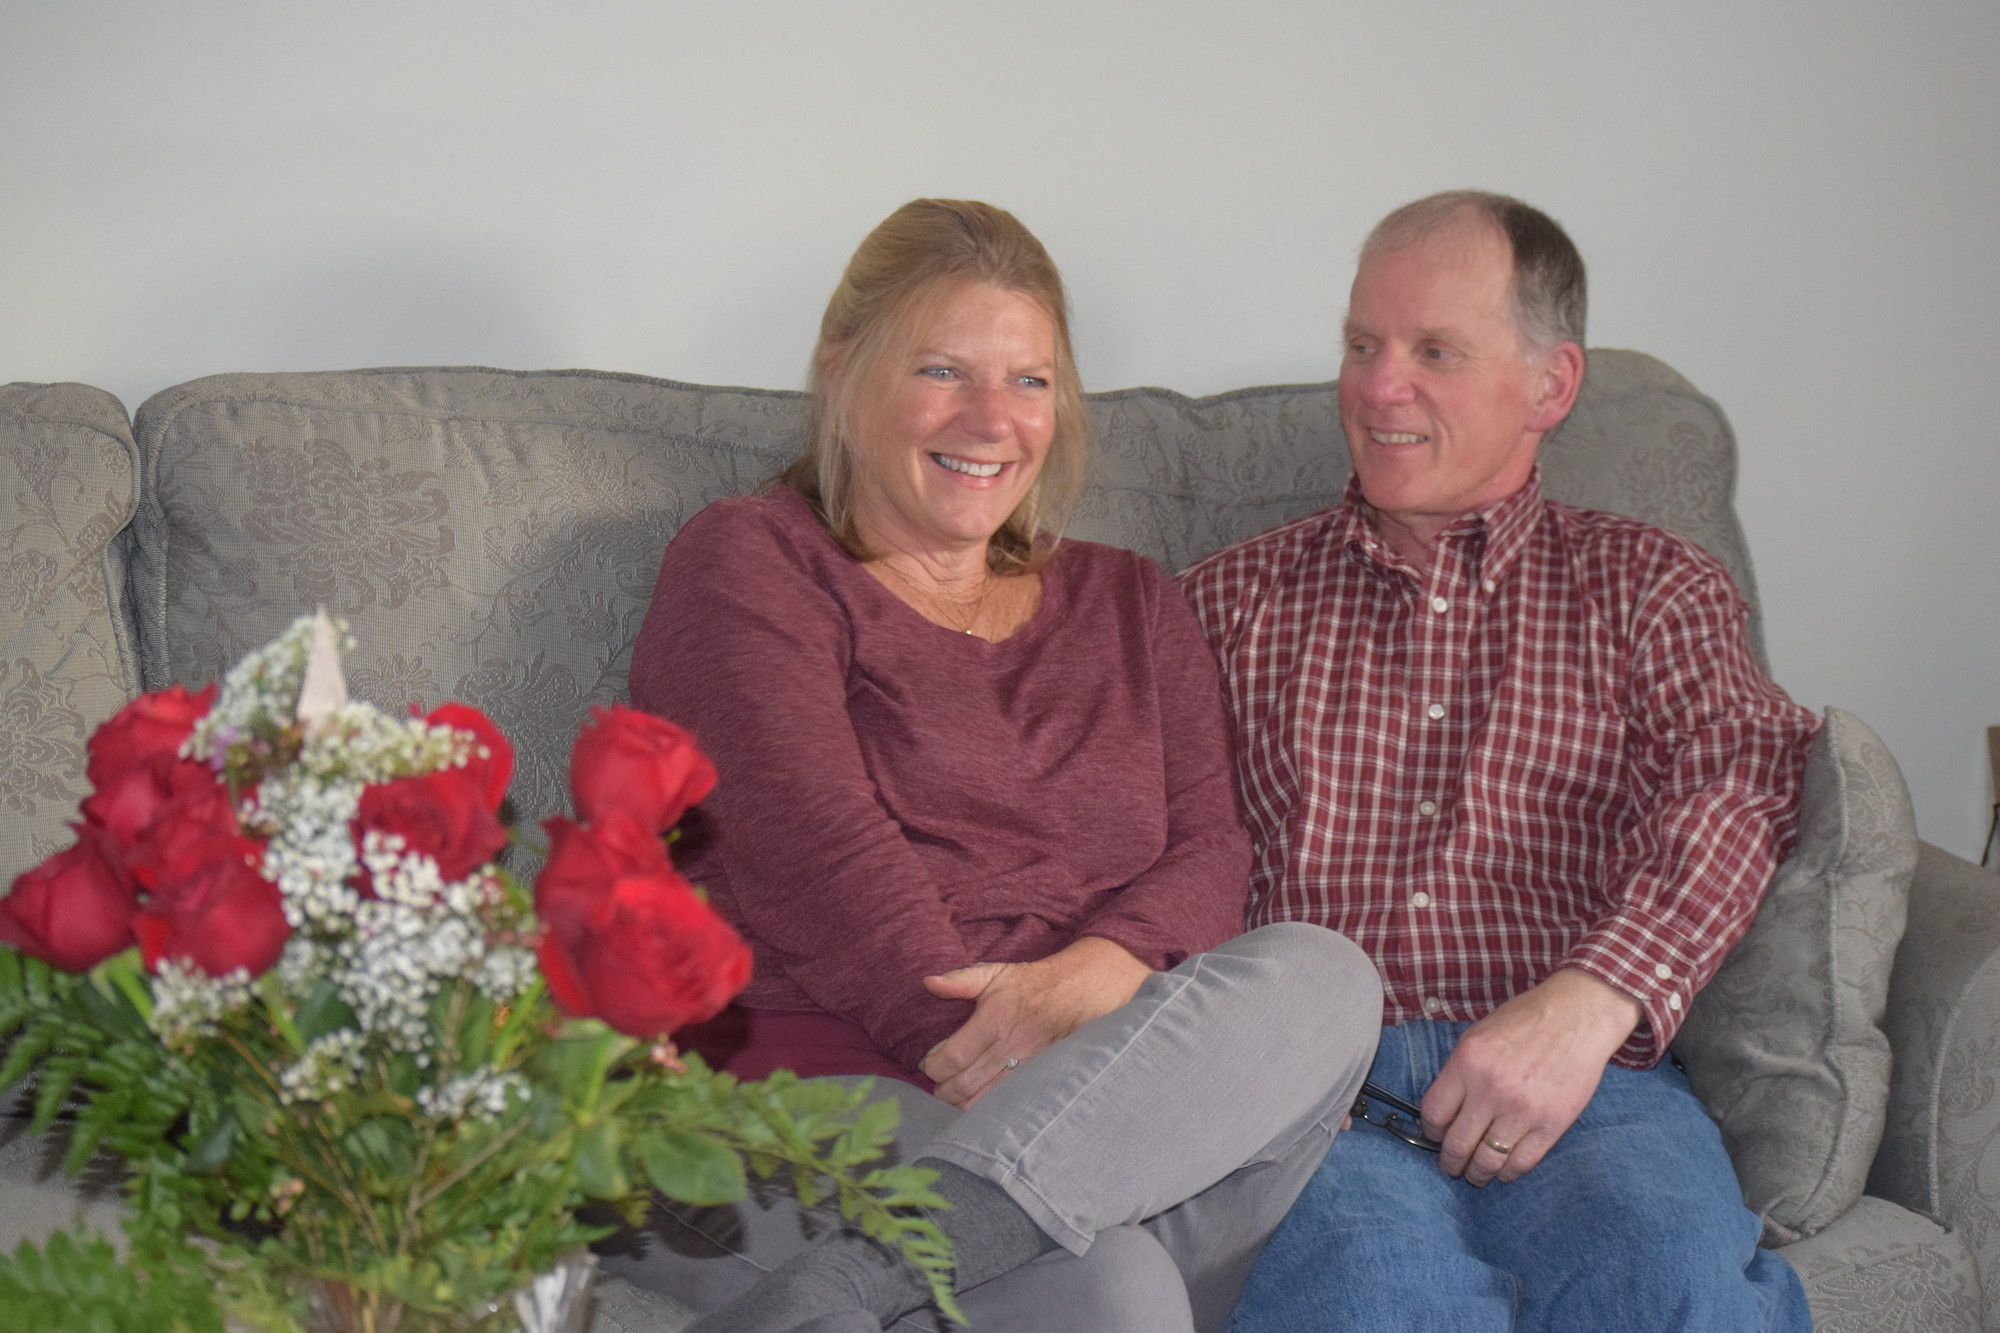 Mary and Brian Roach, of North Wantagh, still remember where they met and formed a bond 35 years ago.